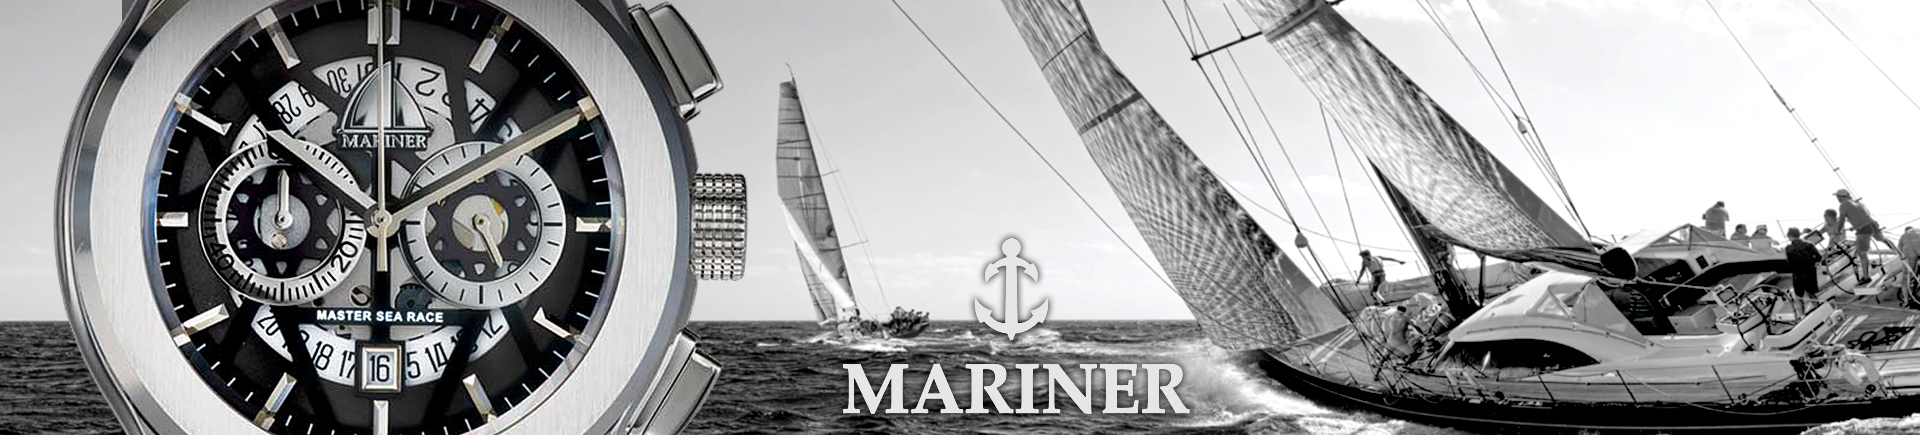 Master-Sea-Race-banner